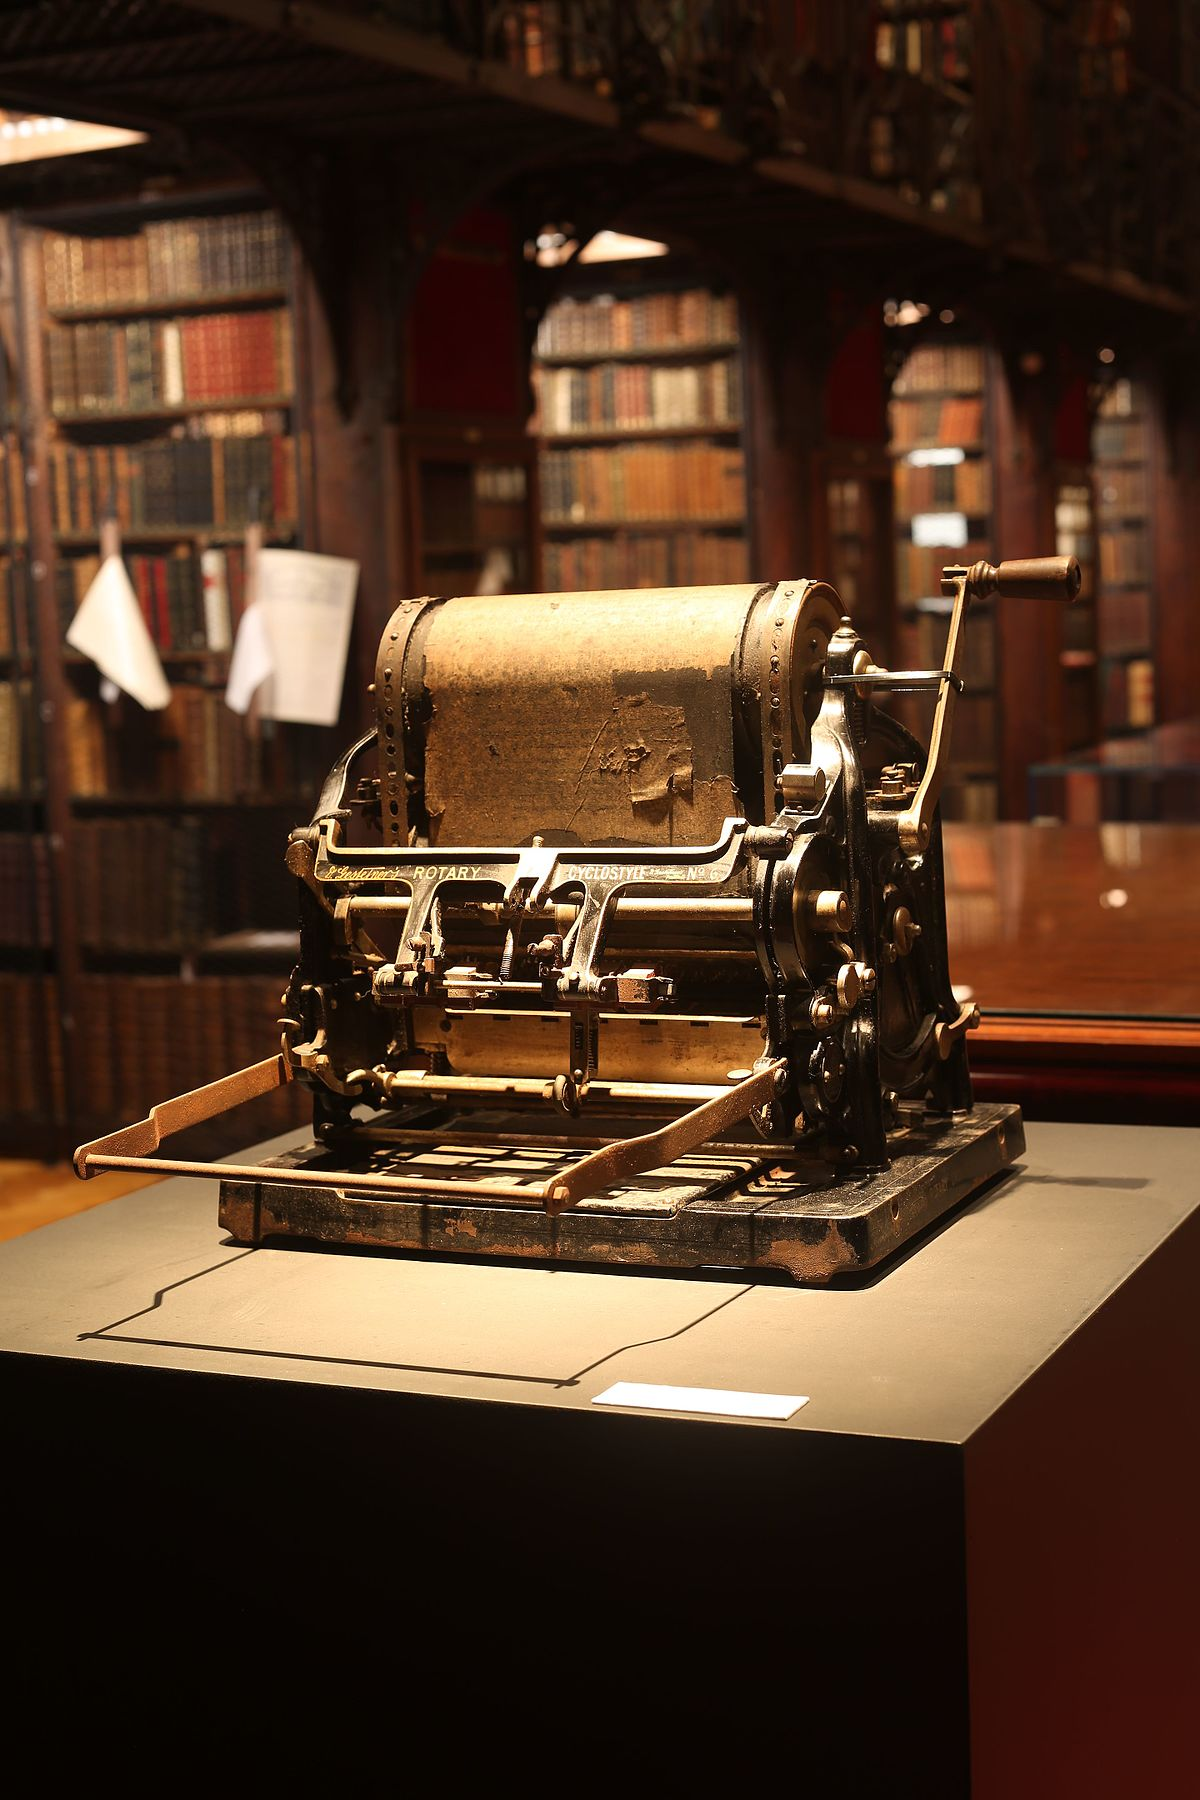 1200px Stencil machine with its last paper in%2C Hendrik Conscience Heritage Library%2C Antwerp%2C Belgium%2C 2016 07 26 French Press